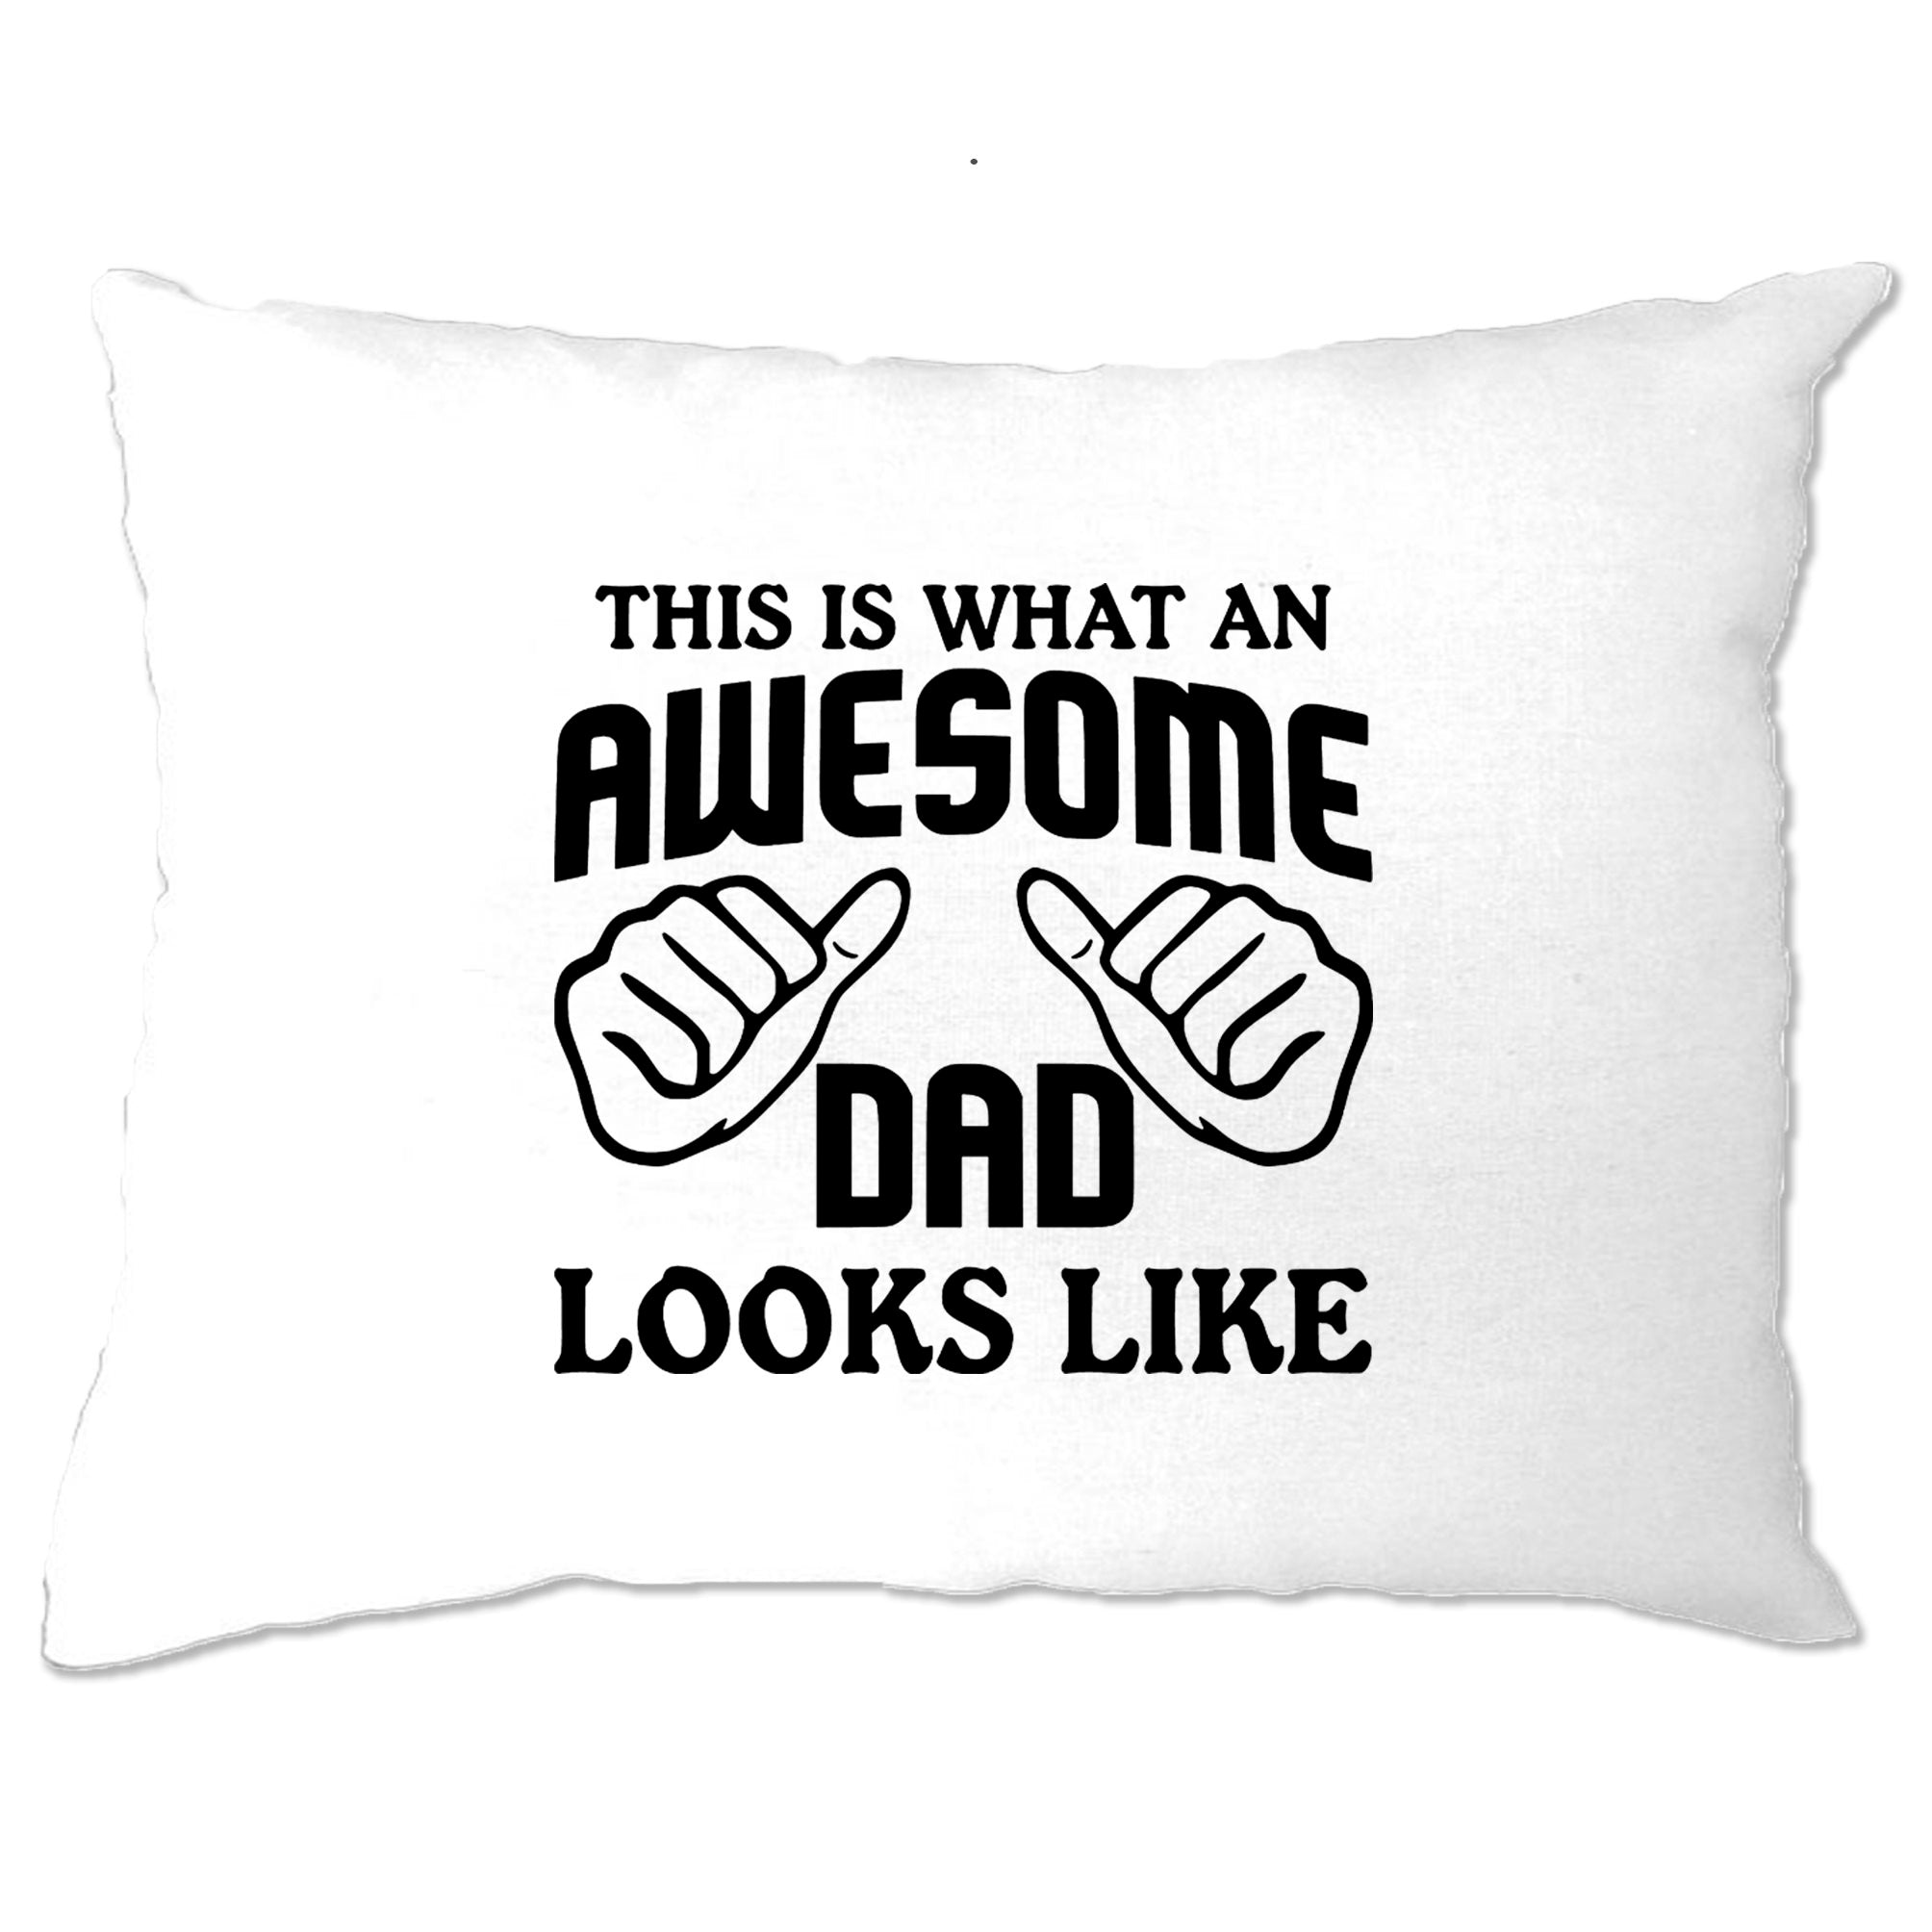 What An Awesome Dad Looks Like Pillow Case